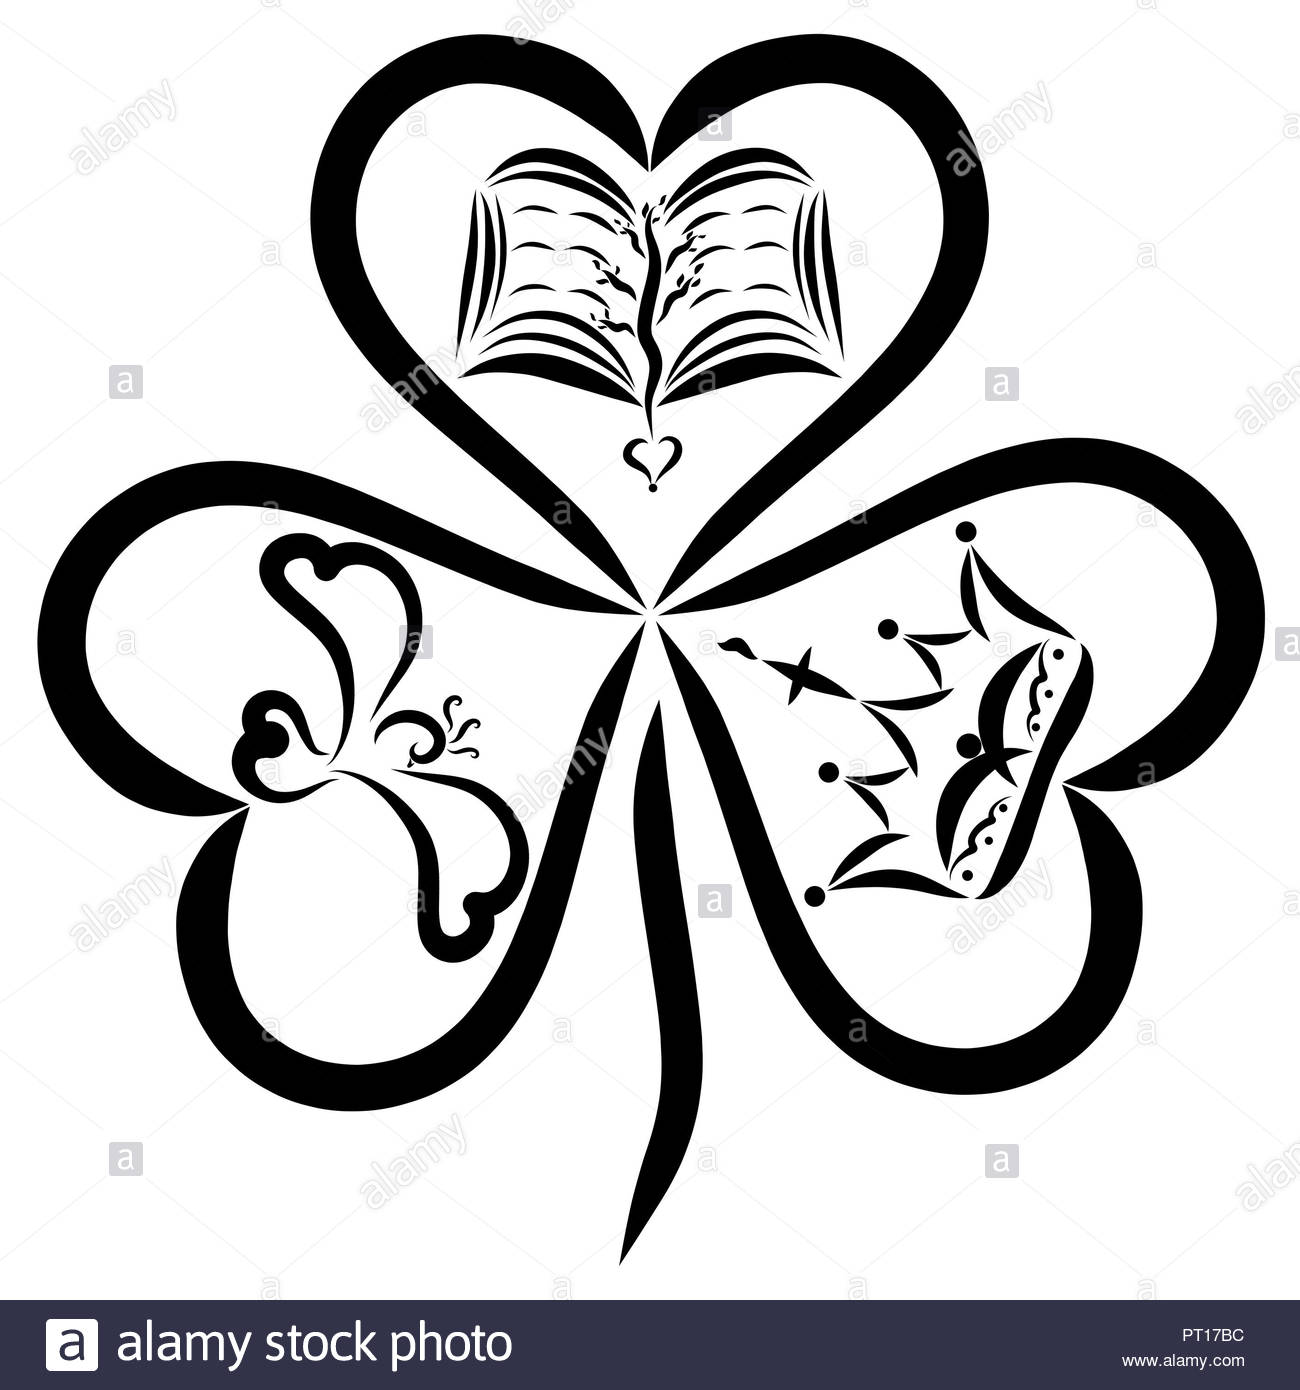 Clover with three leaves in the shape of a heart, a crown, a bird and the Bible - Stock Image